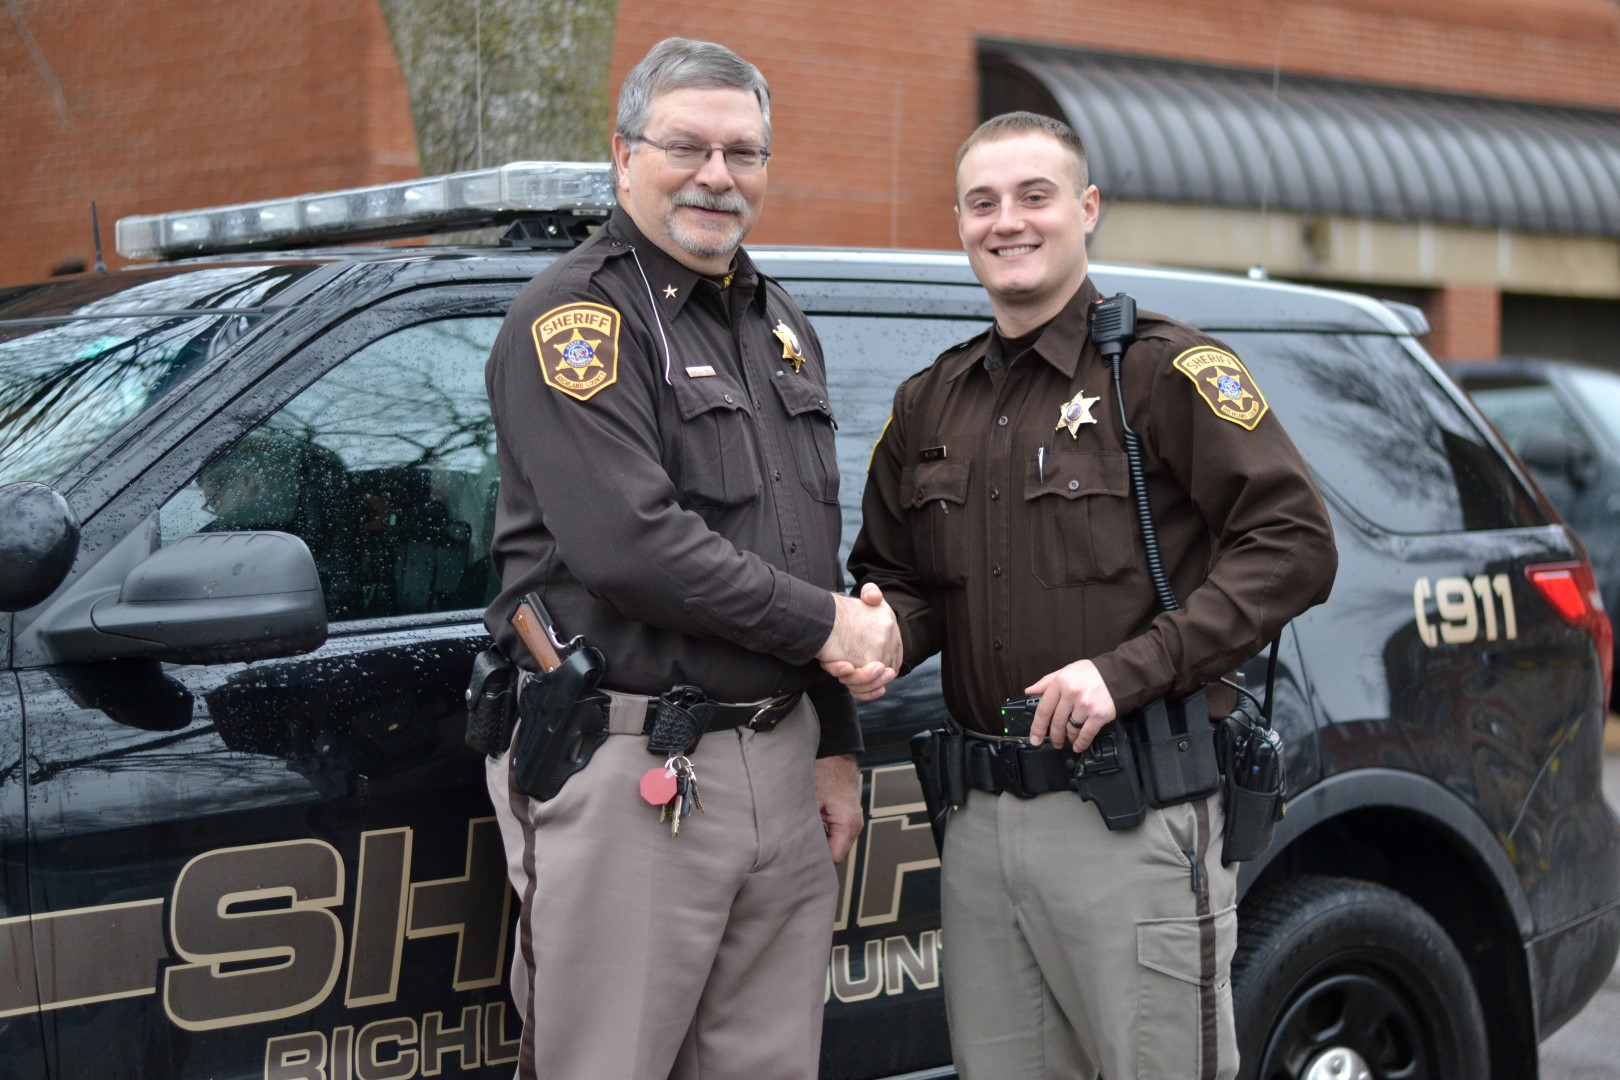 Sheriff's Department Selects New K9 Handler